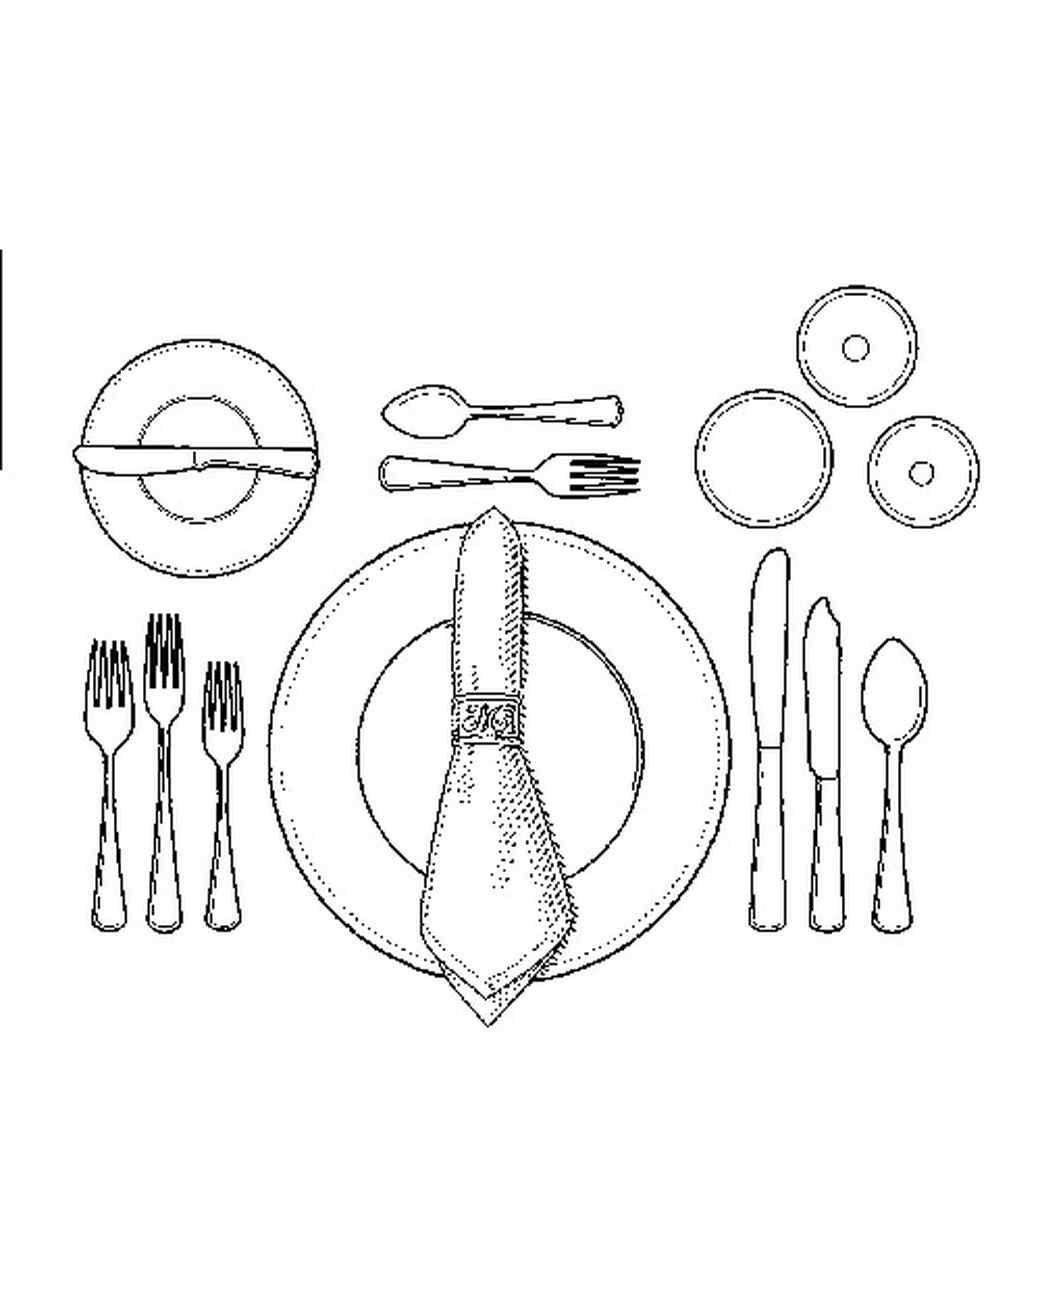 Table Setting Drawing At Getdrawings